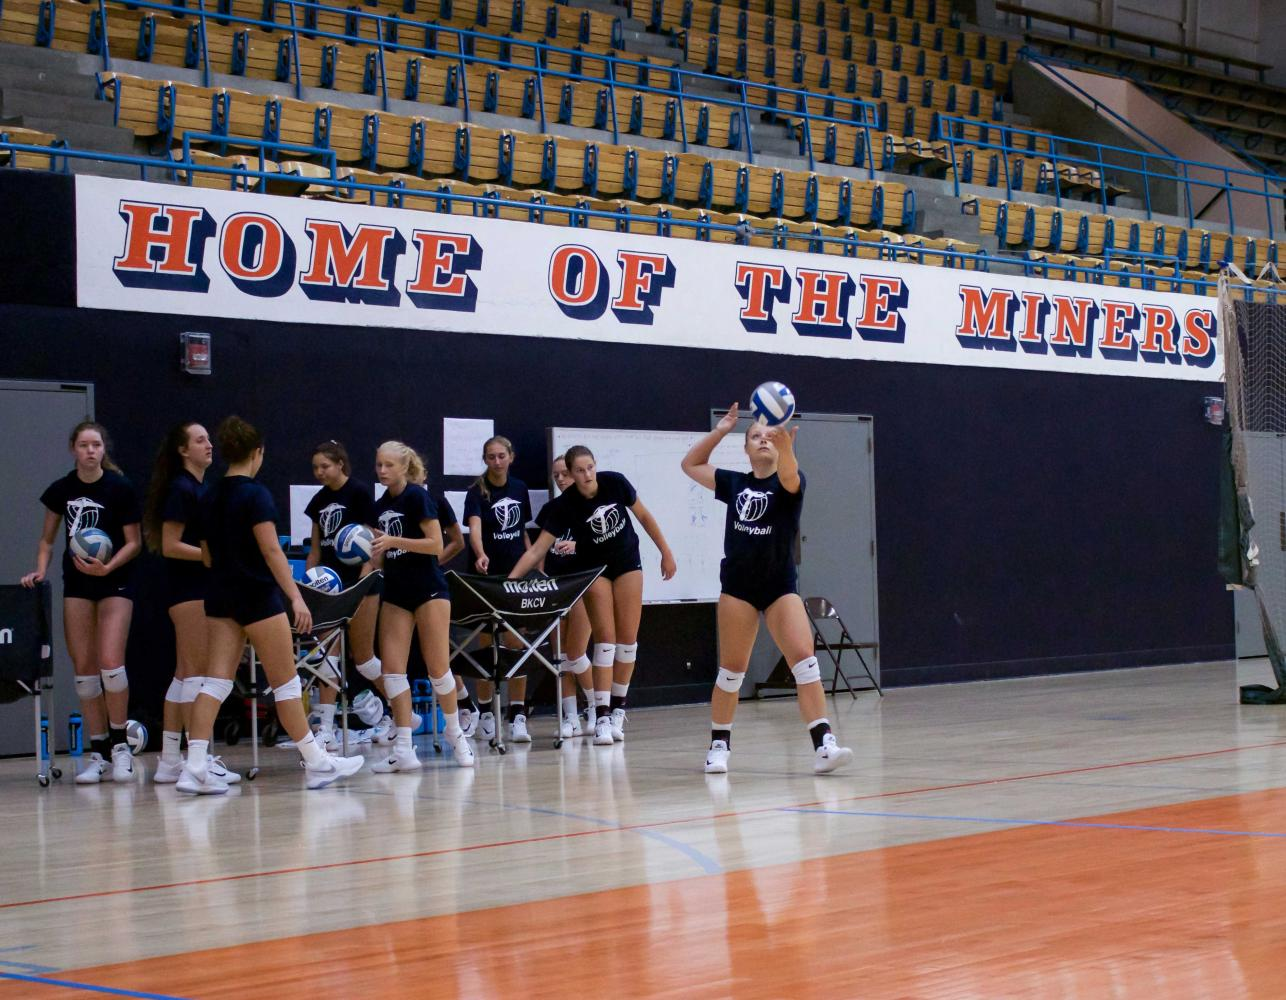 The Miners fell 3-1 to Montana in their first match of the season.